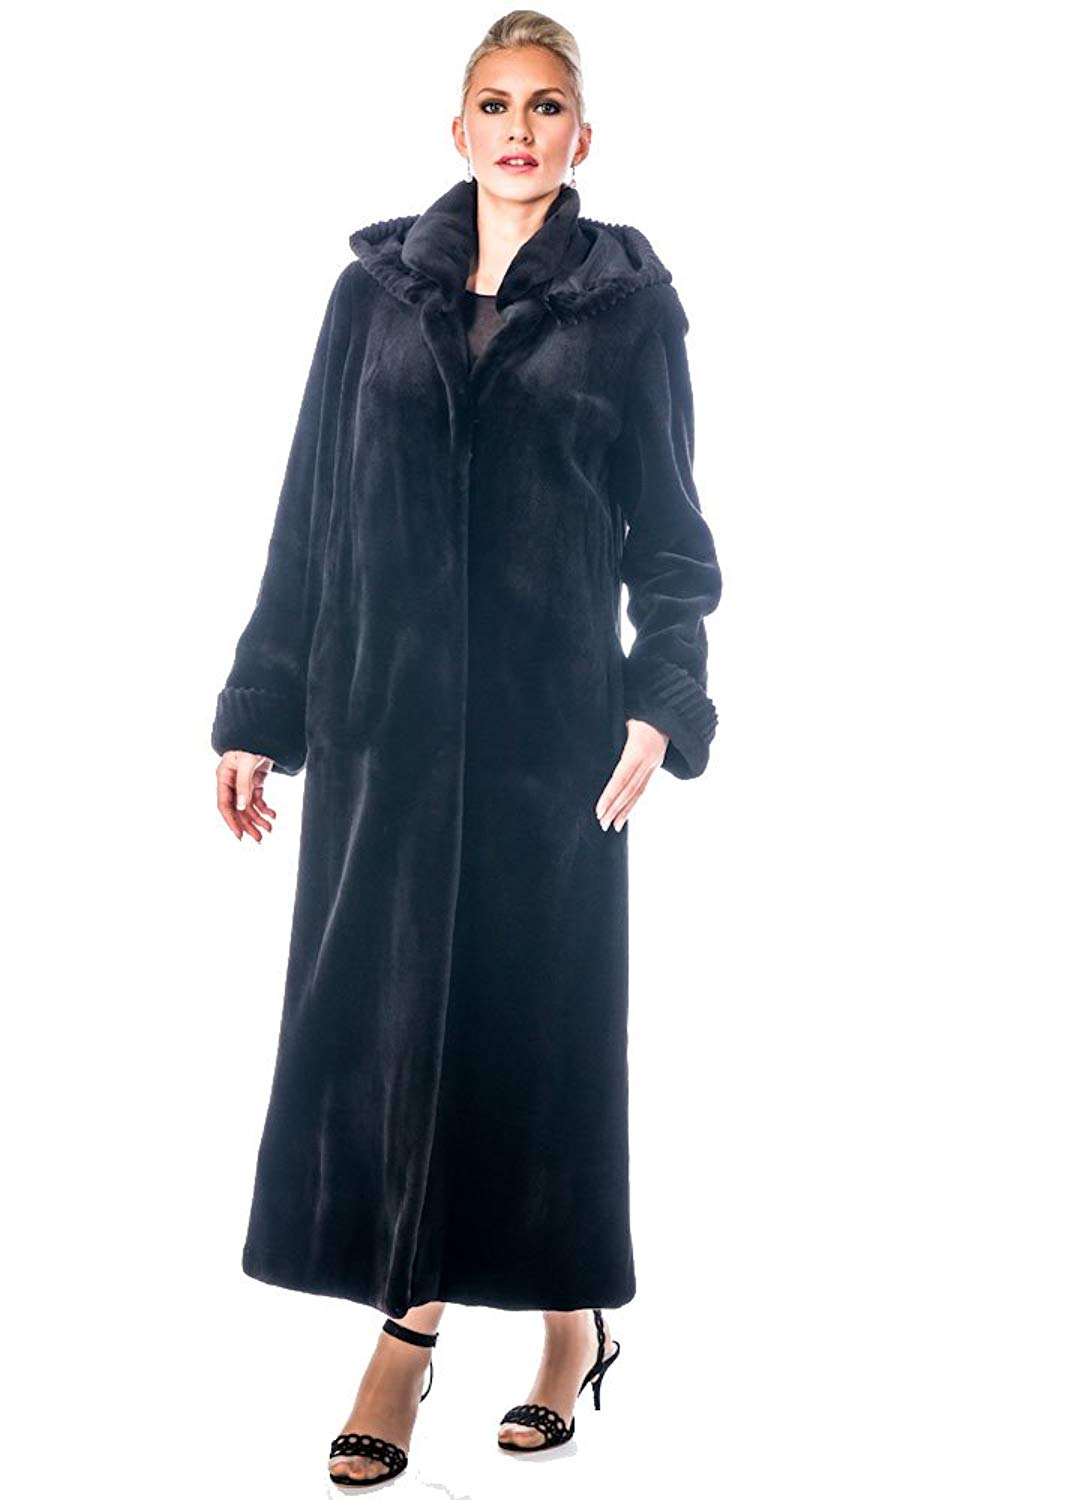 Madison Avenue Mall Womens Sheared Mink Fur Coat With Hood - Full Lenght